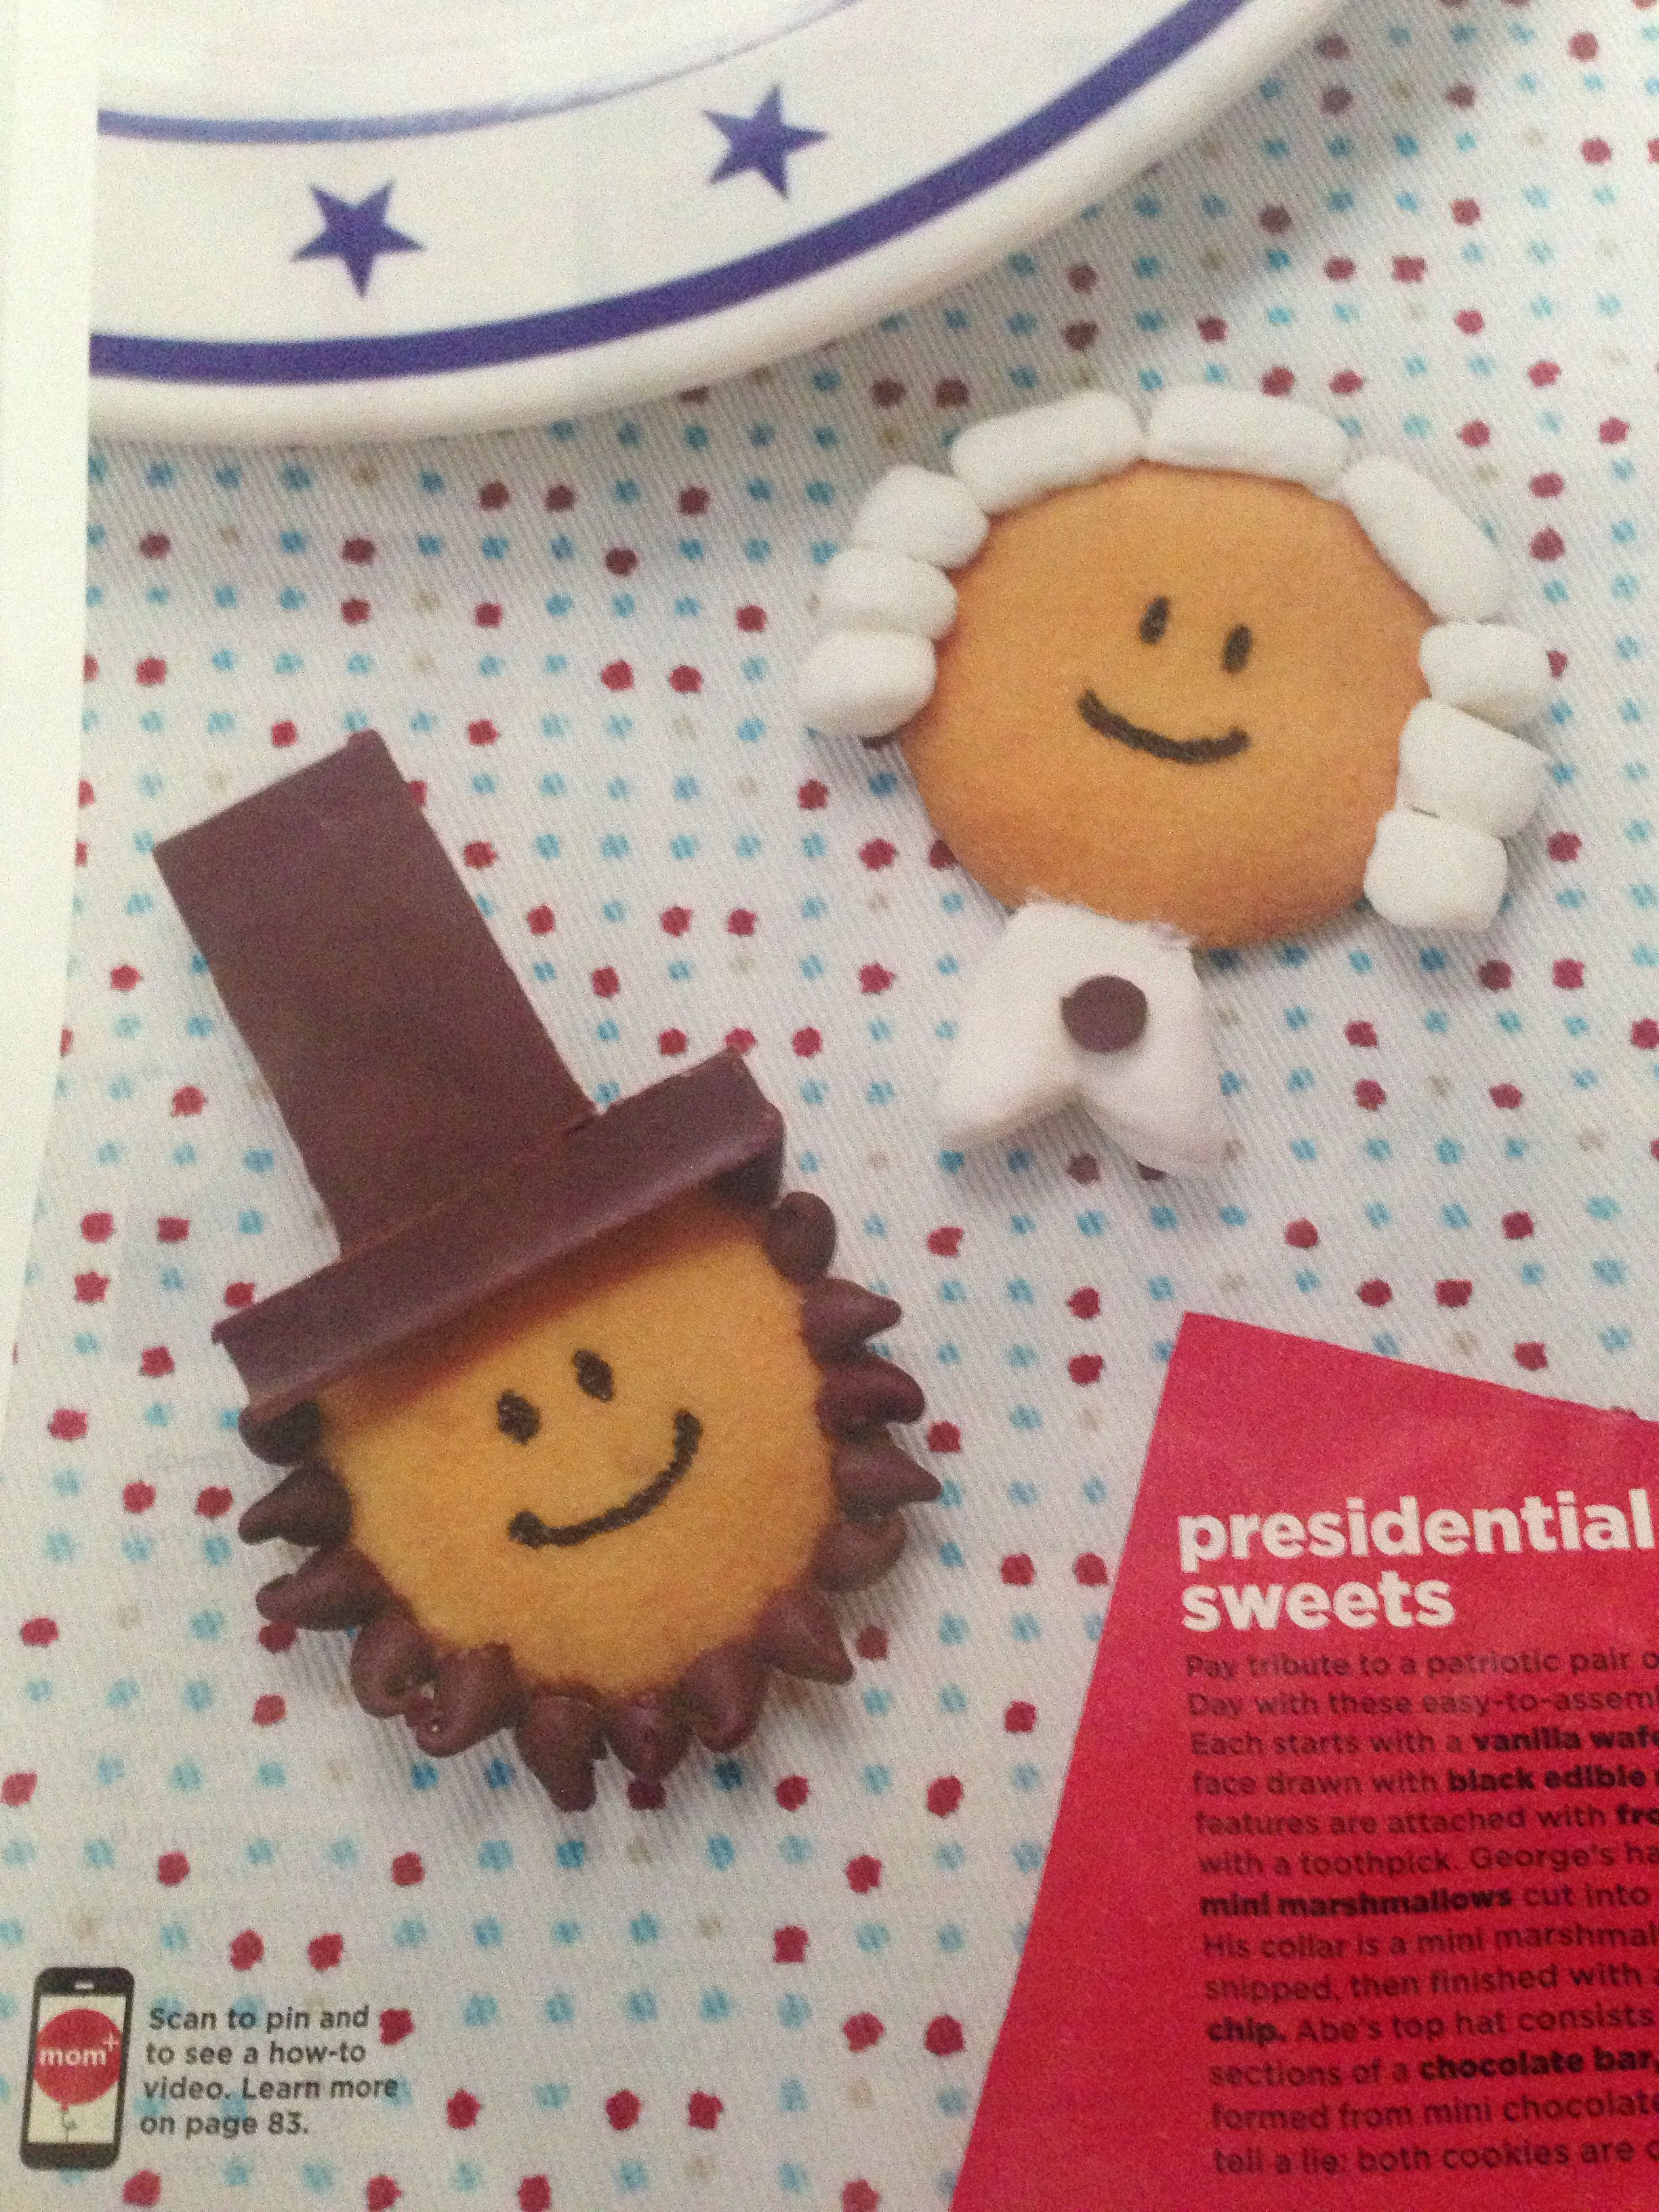 Presidential treats